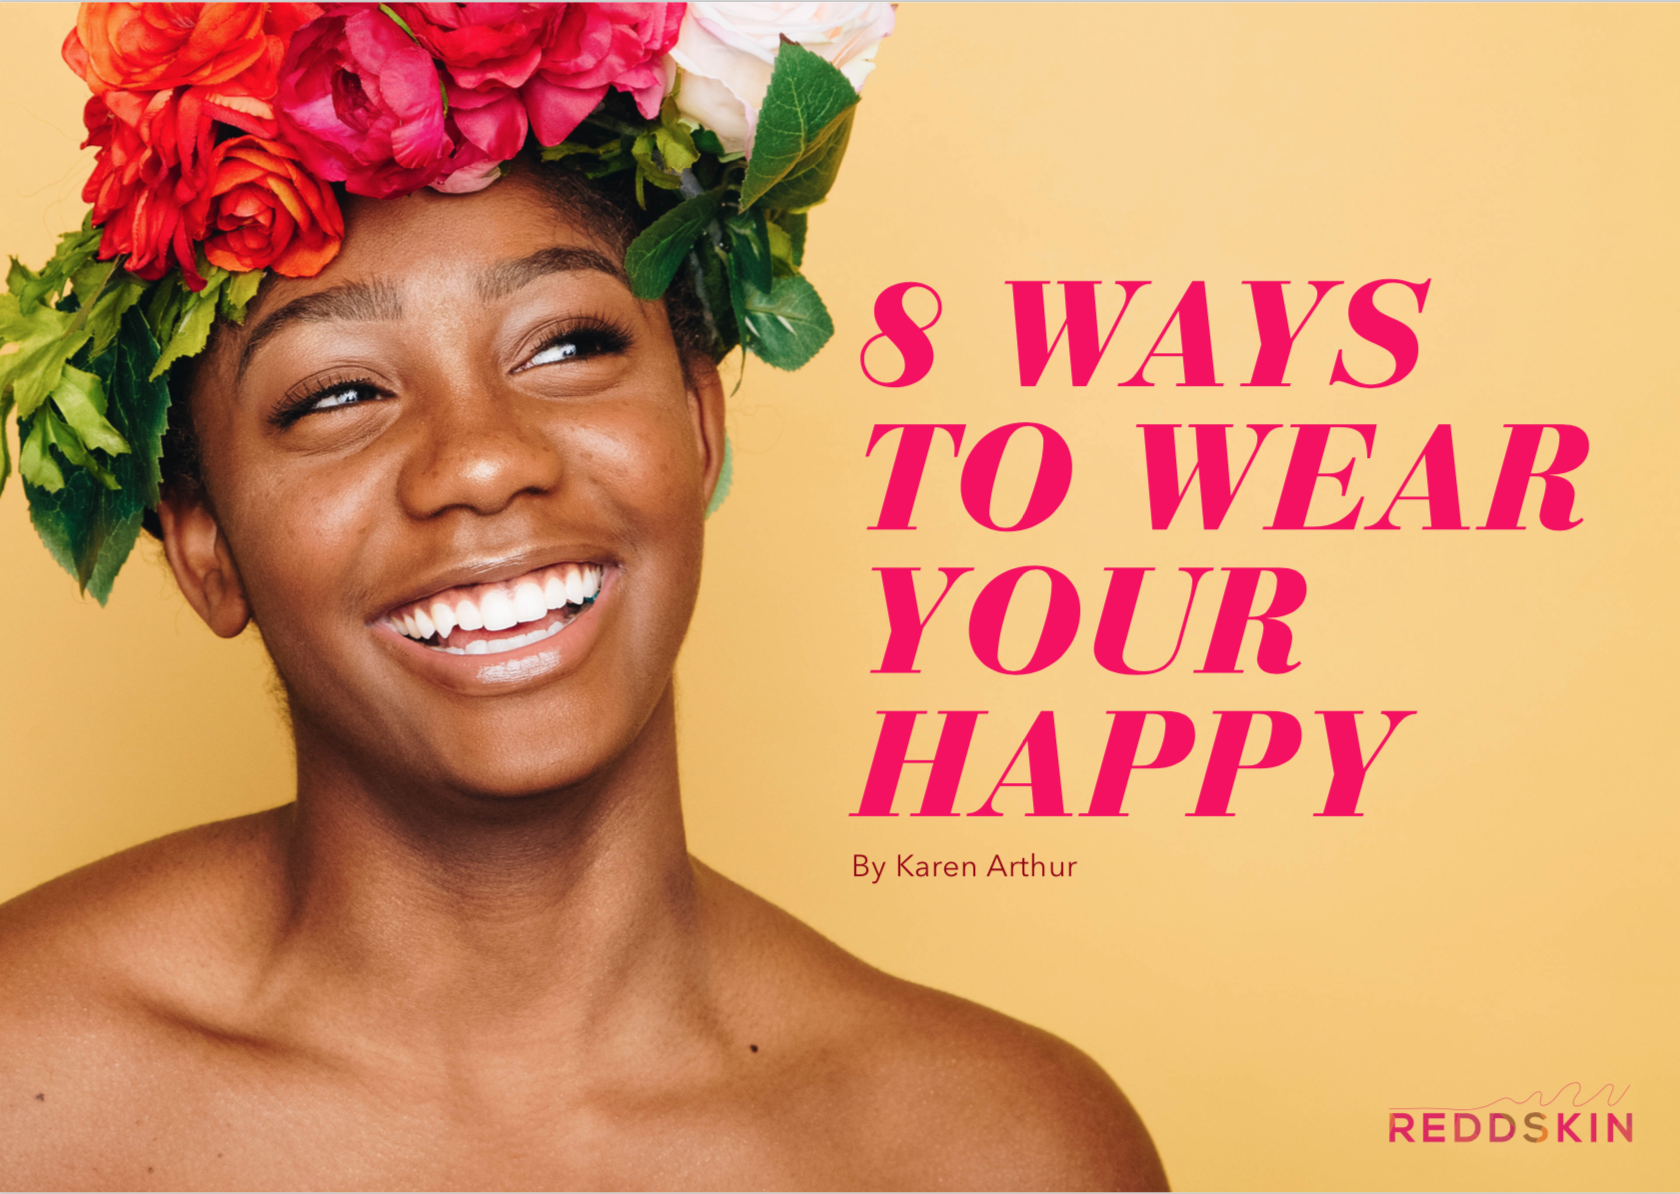 Beautifully illustrated andextremely informative,8 WAYS TO WEAR YOUR HAPPYis the perfect guide to dressing tofeel AND look your best self! -